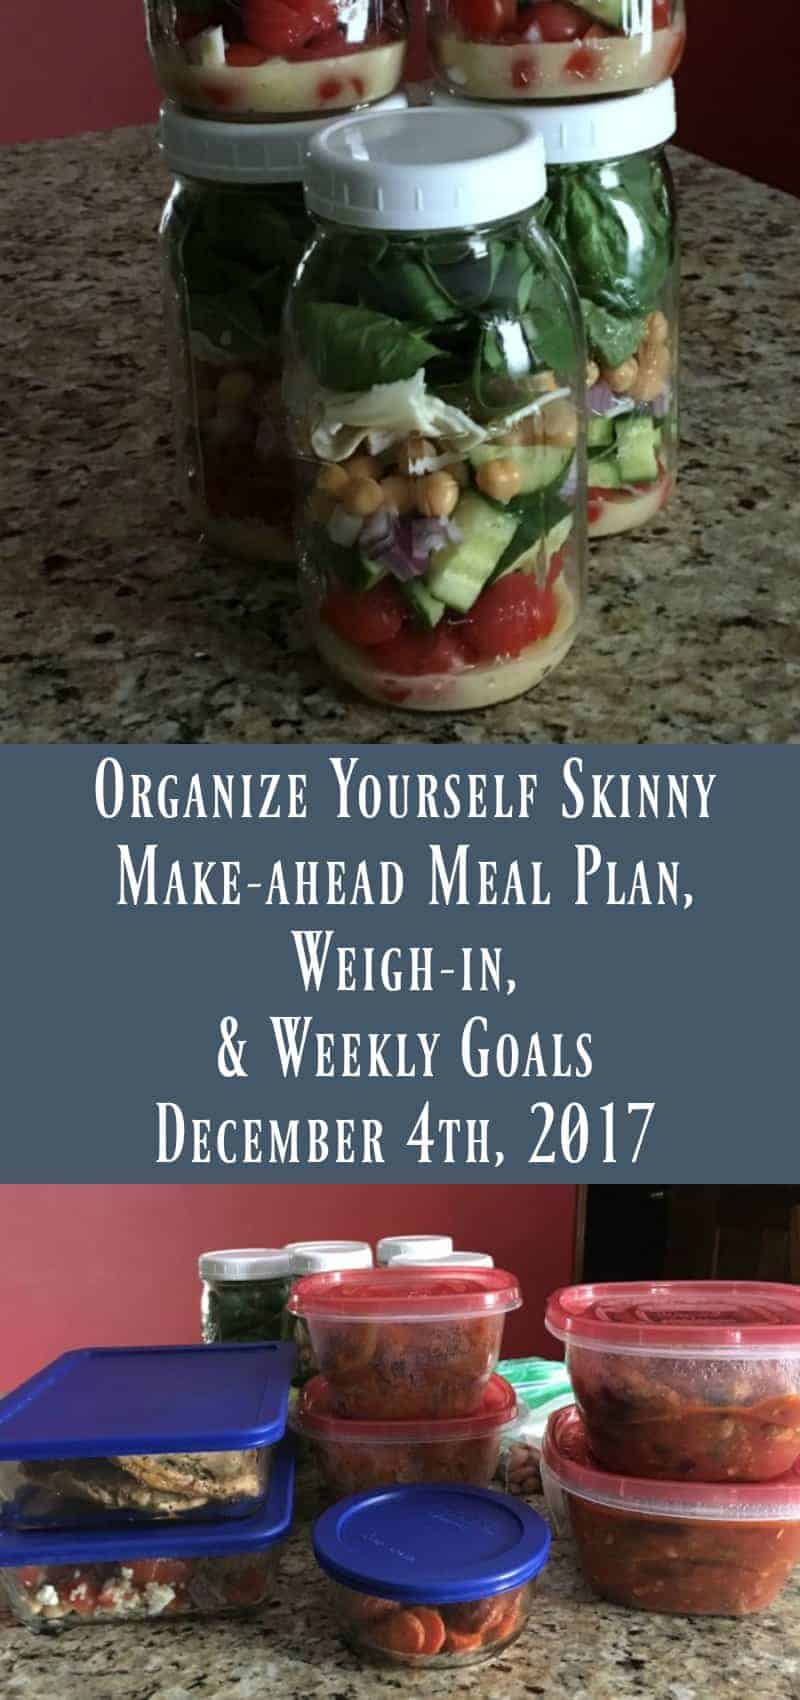 Make-ahead Meal Plan, Weigh-in, and Weekly Goals (December 4th, 2017)